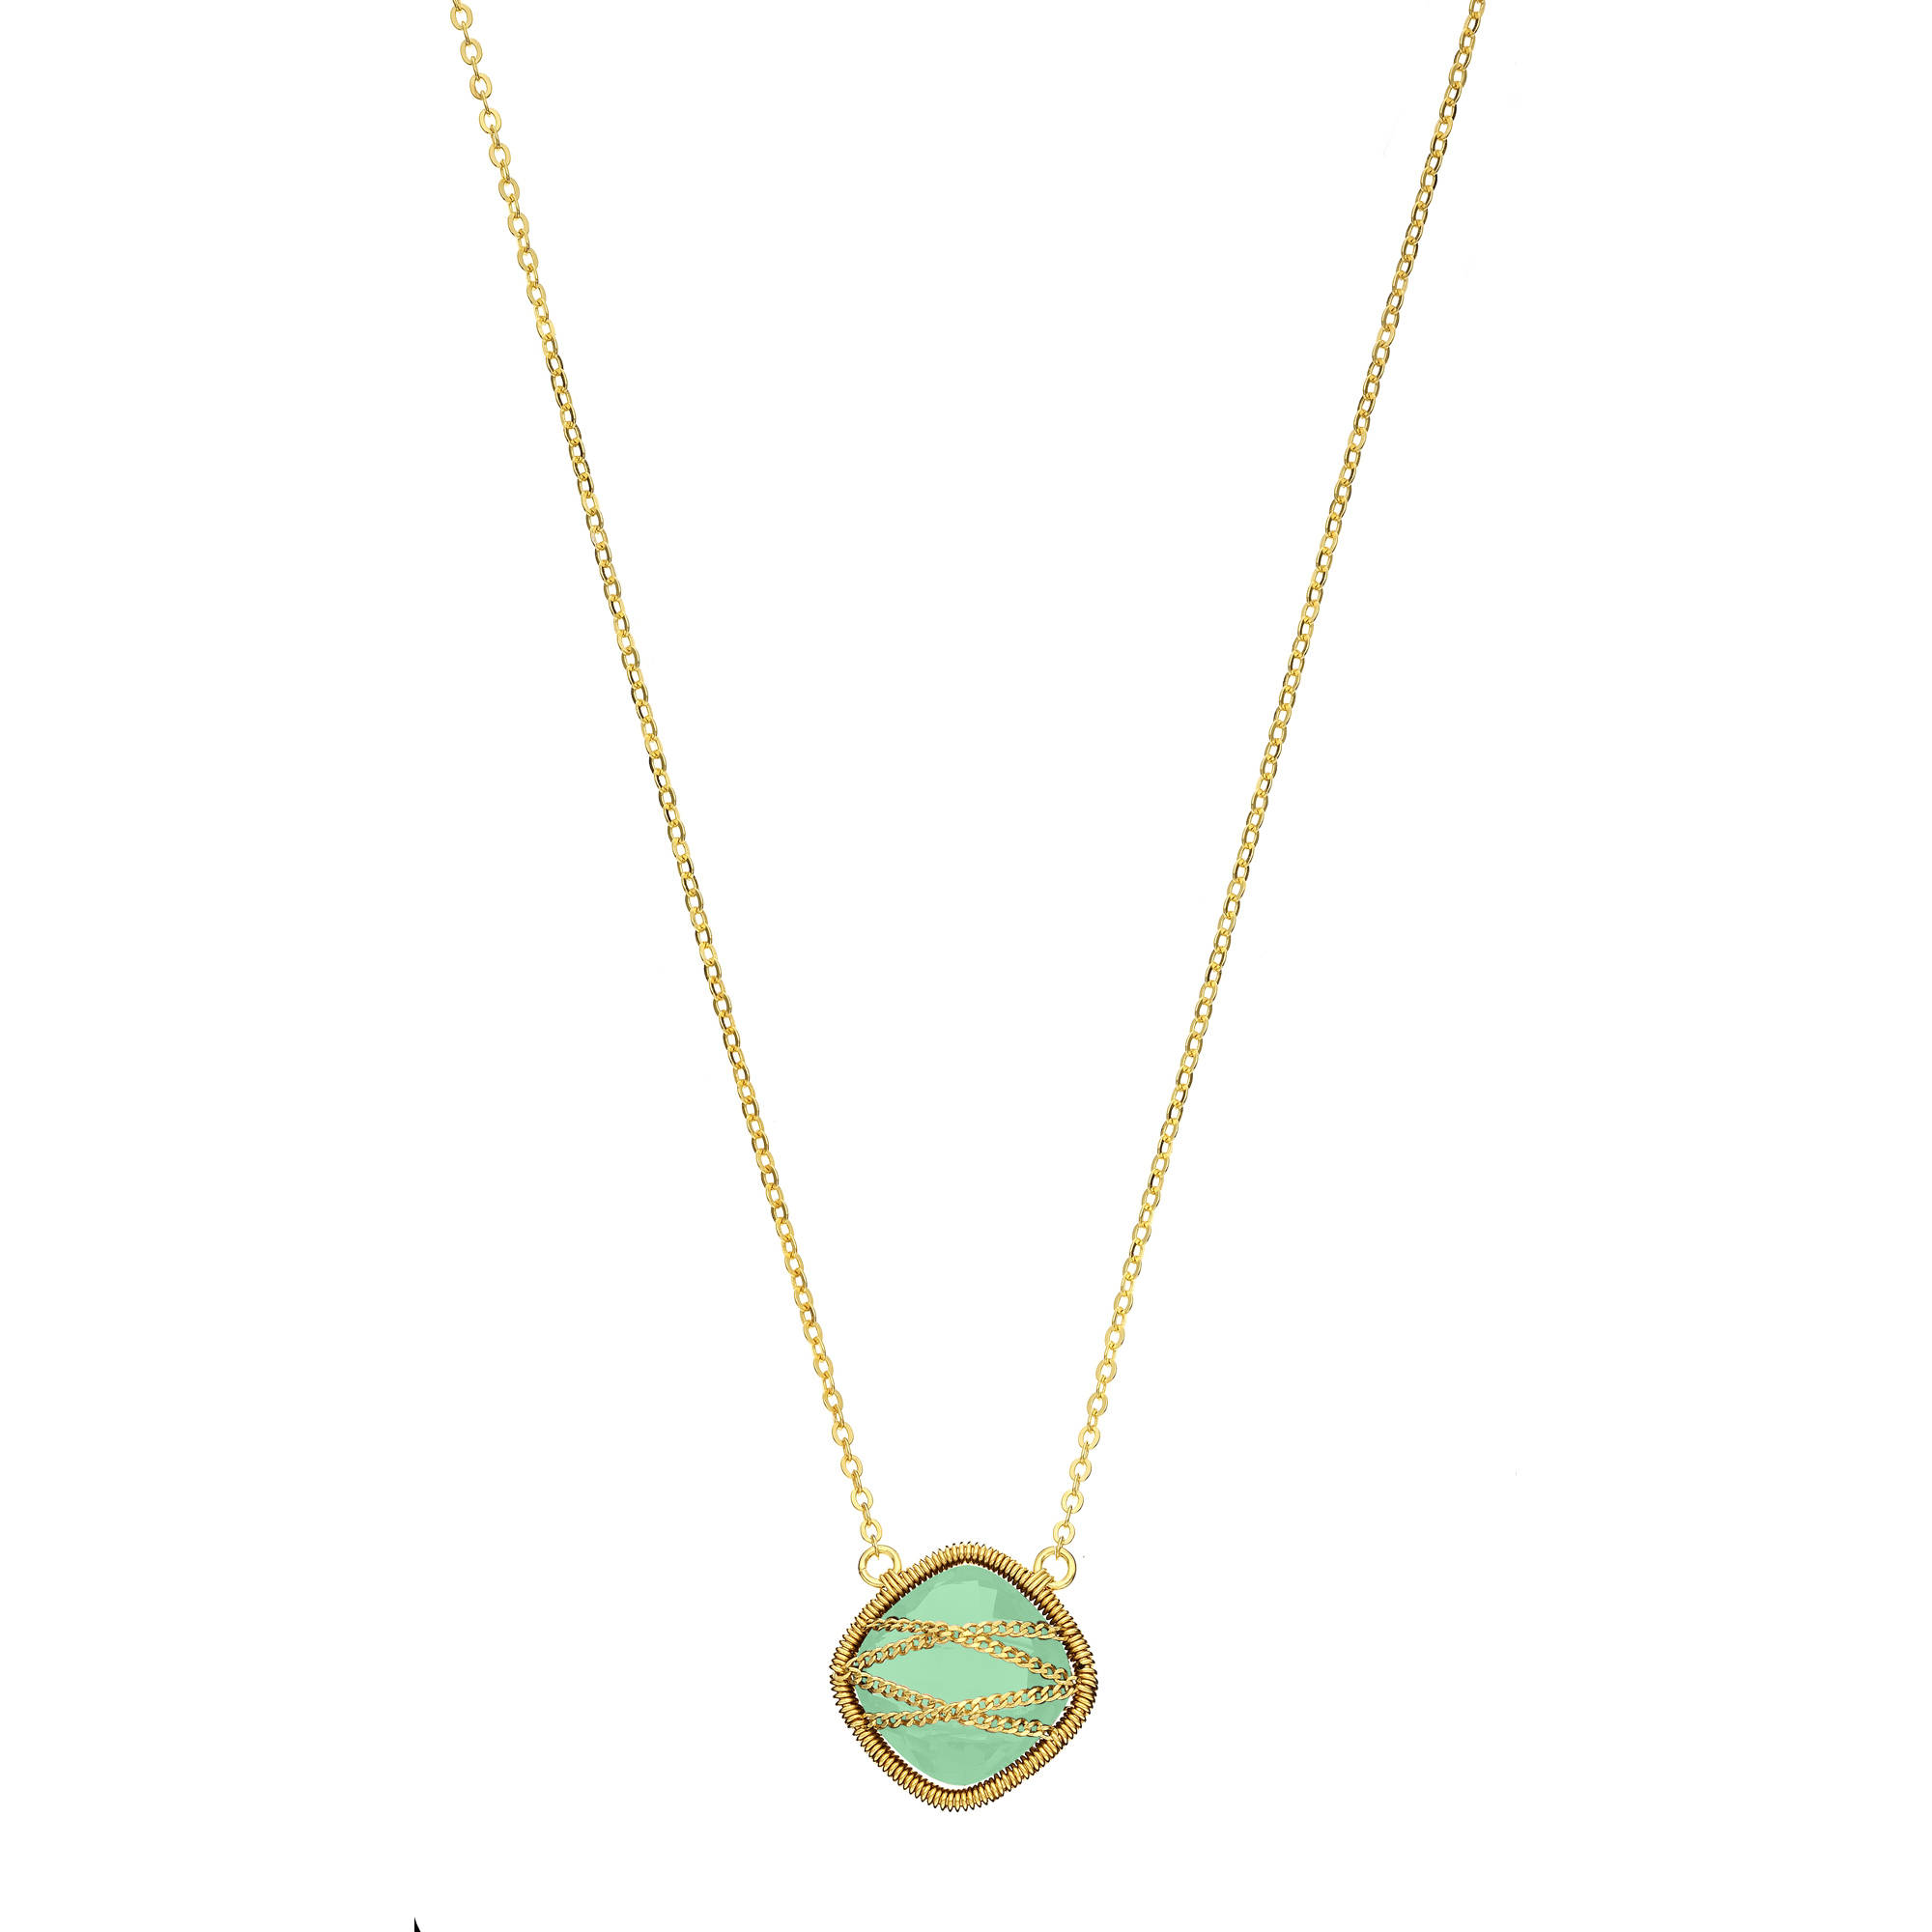 Image of 5th & Main 18kt Gold over Sterling Silver Hand-Wrapped Squared Chalcedony Stone Necklace